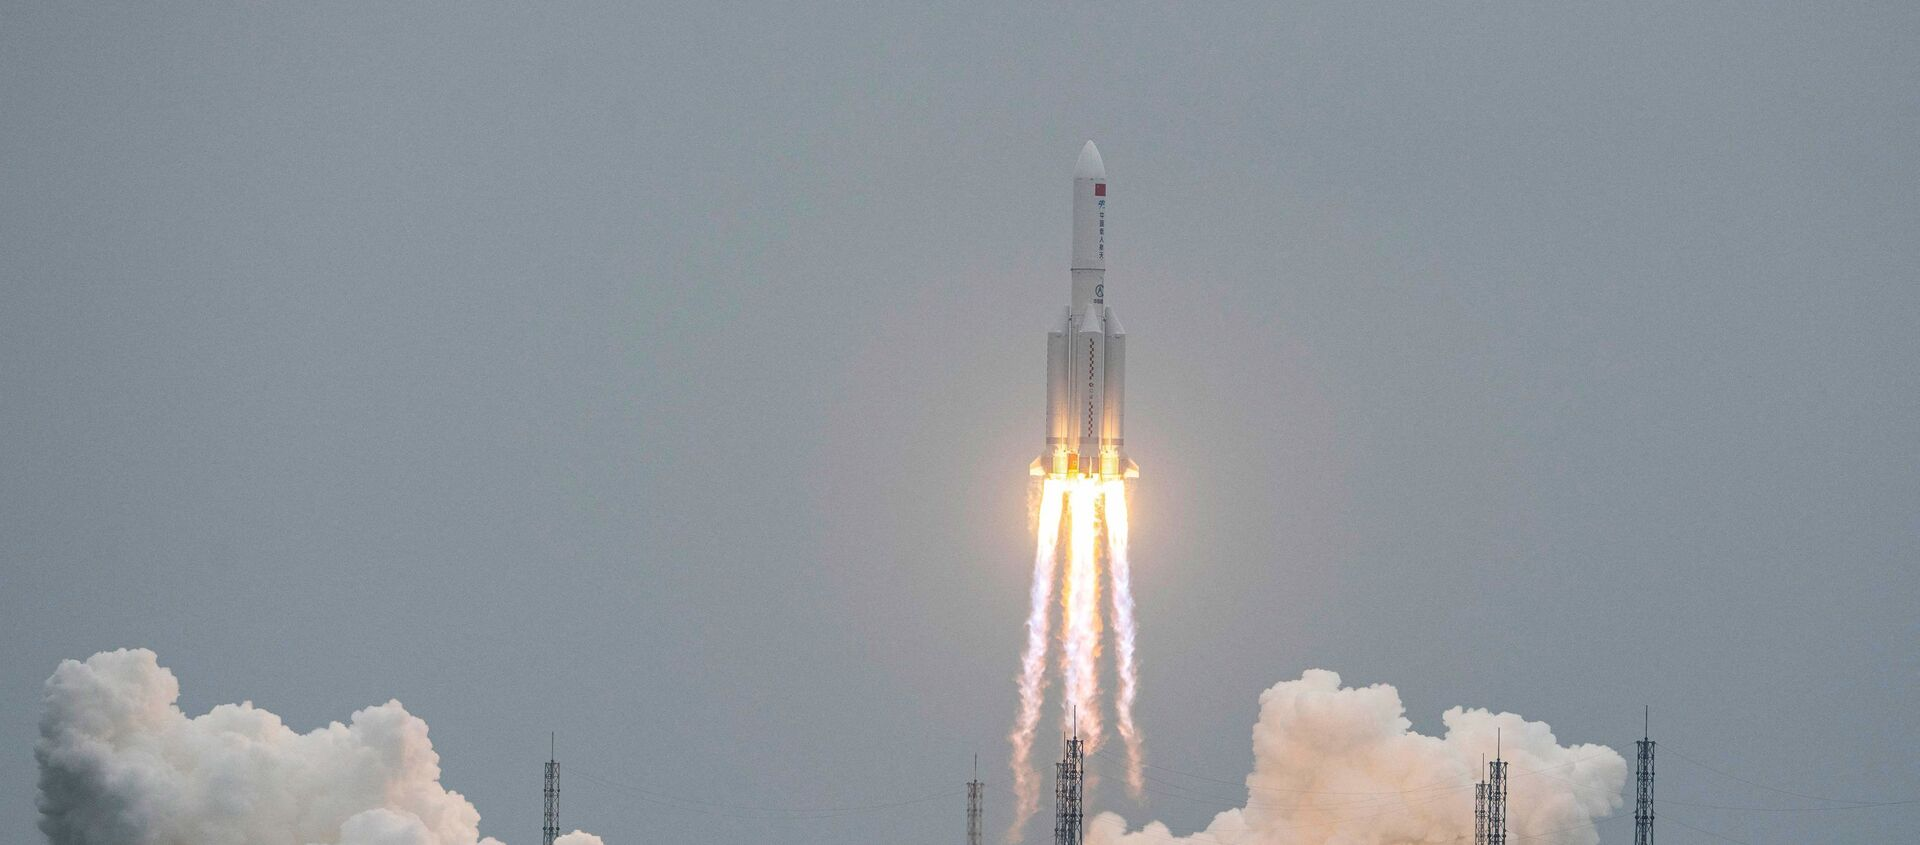 A Long March 5B rocket, carrying China's Tianhe space station core module, lifts off from the Wenchang Space Launch Center in southern China's Hainan province on April 29, 2021.  - Sputnik Italia, 1920, 05.05.2021